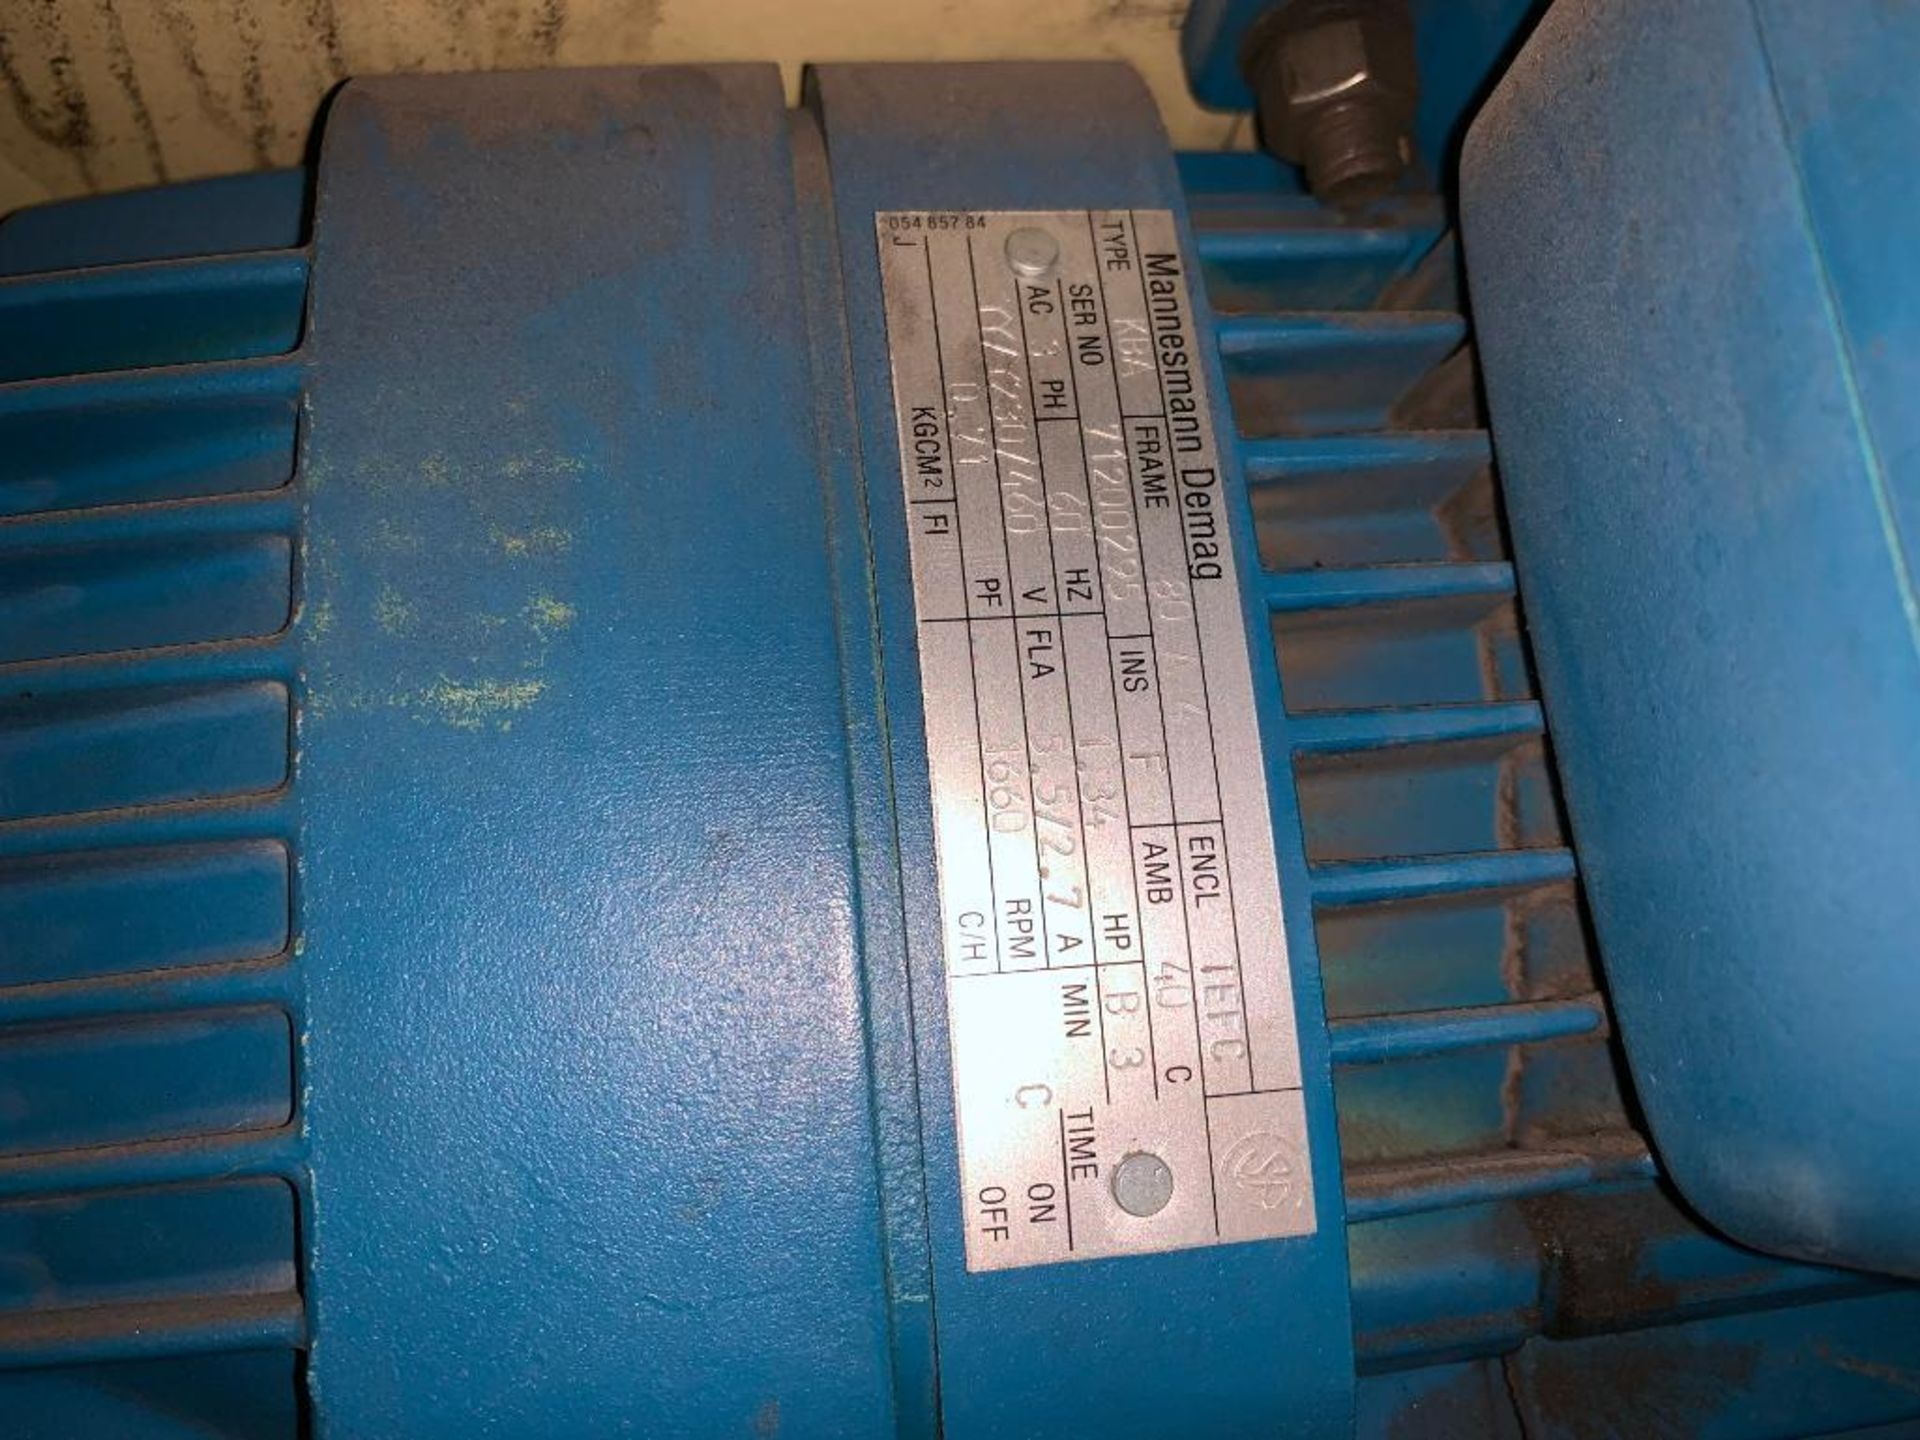 1992 Currie top to bottom palletizer, machine number LSP-5-1176 - Image 19 of 56